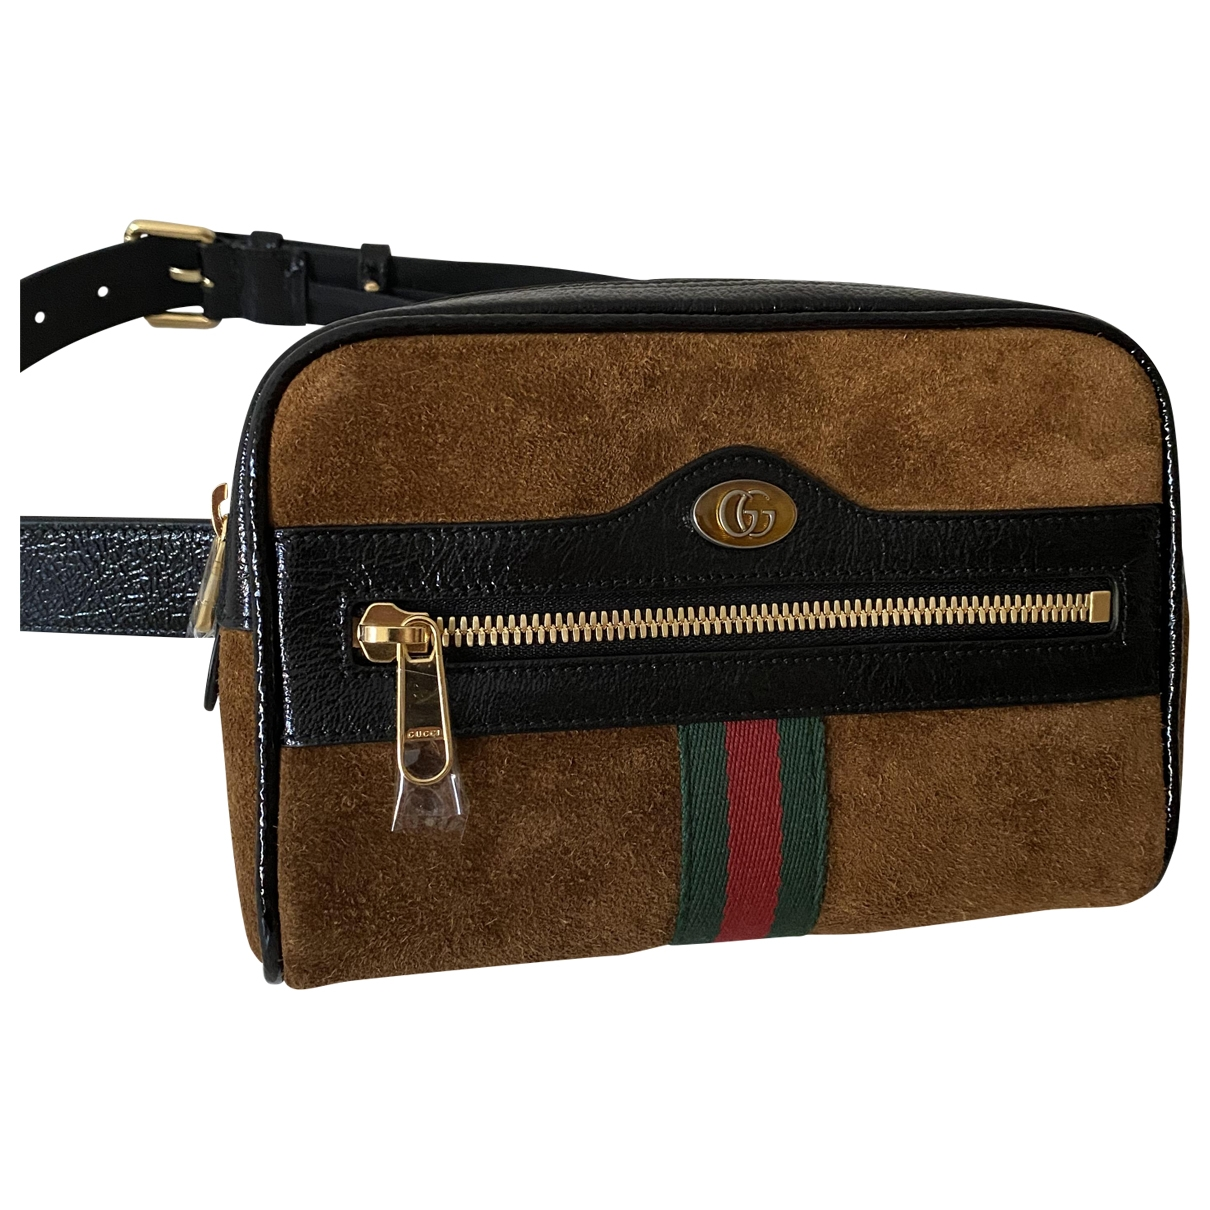 Gucci Ophidia Brown Suede Clutch bag for Women \N